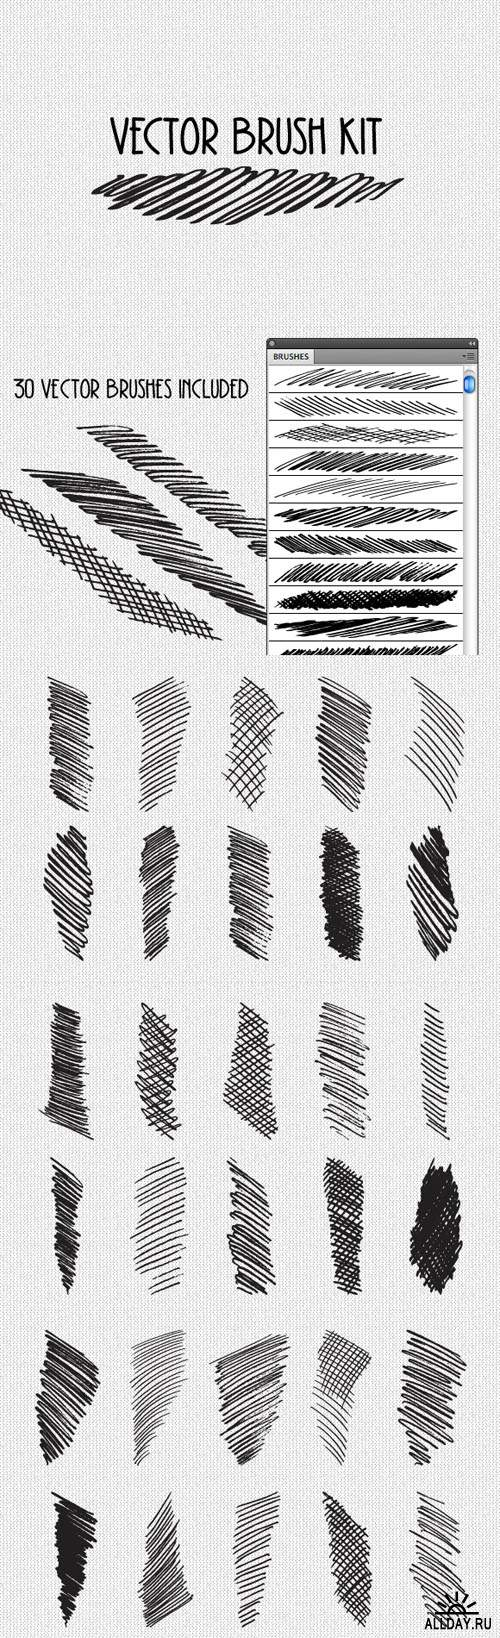 Vector Cross Hatch Brush Kit